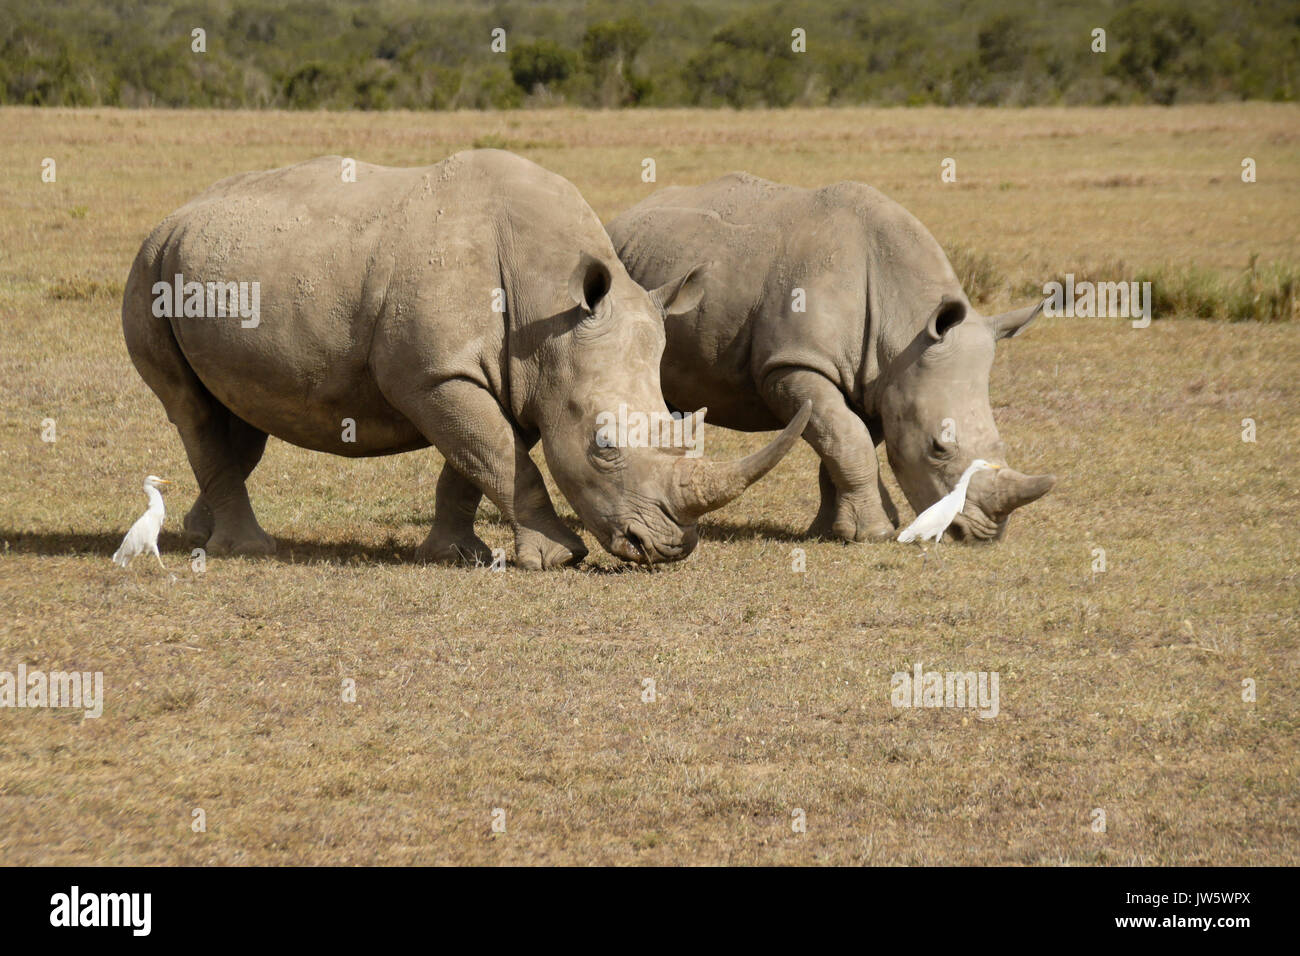 White rhinos grazing, cattle egrets following for insects, Ol Pejeta Conservancy, Kenya - Stock Image